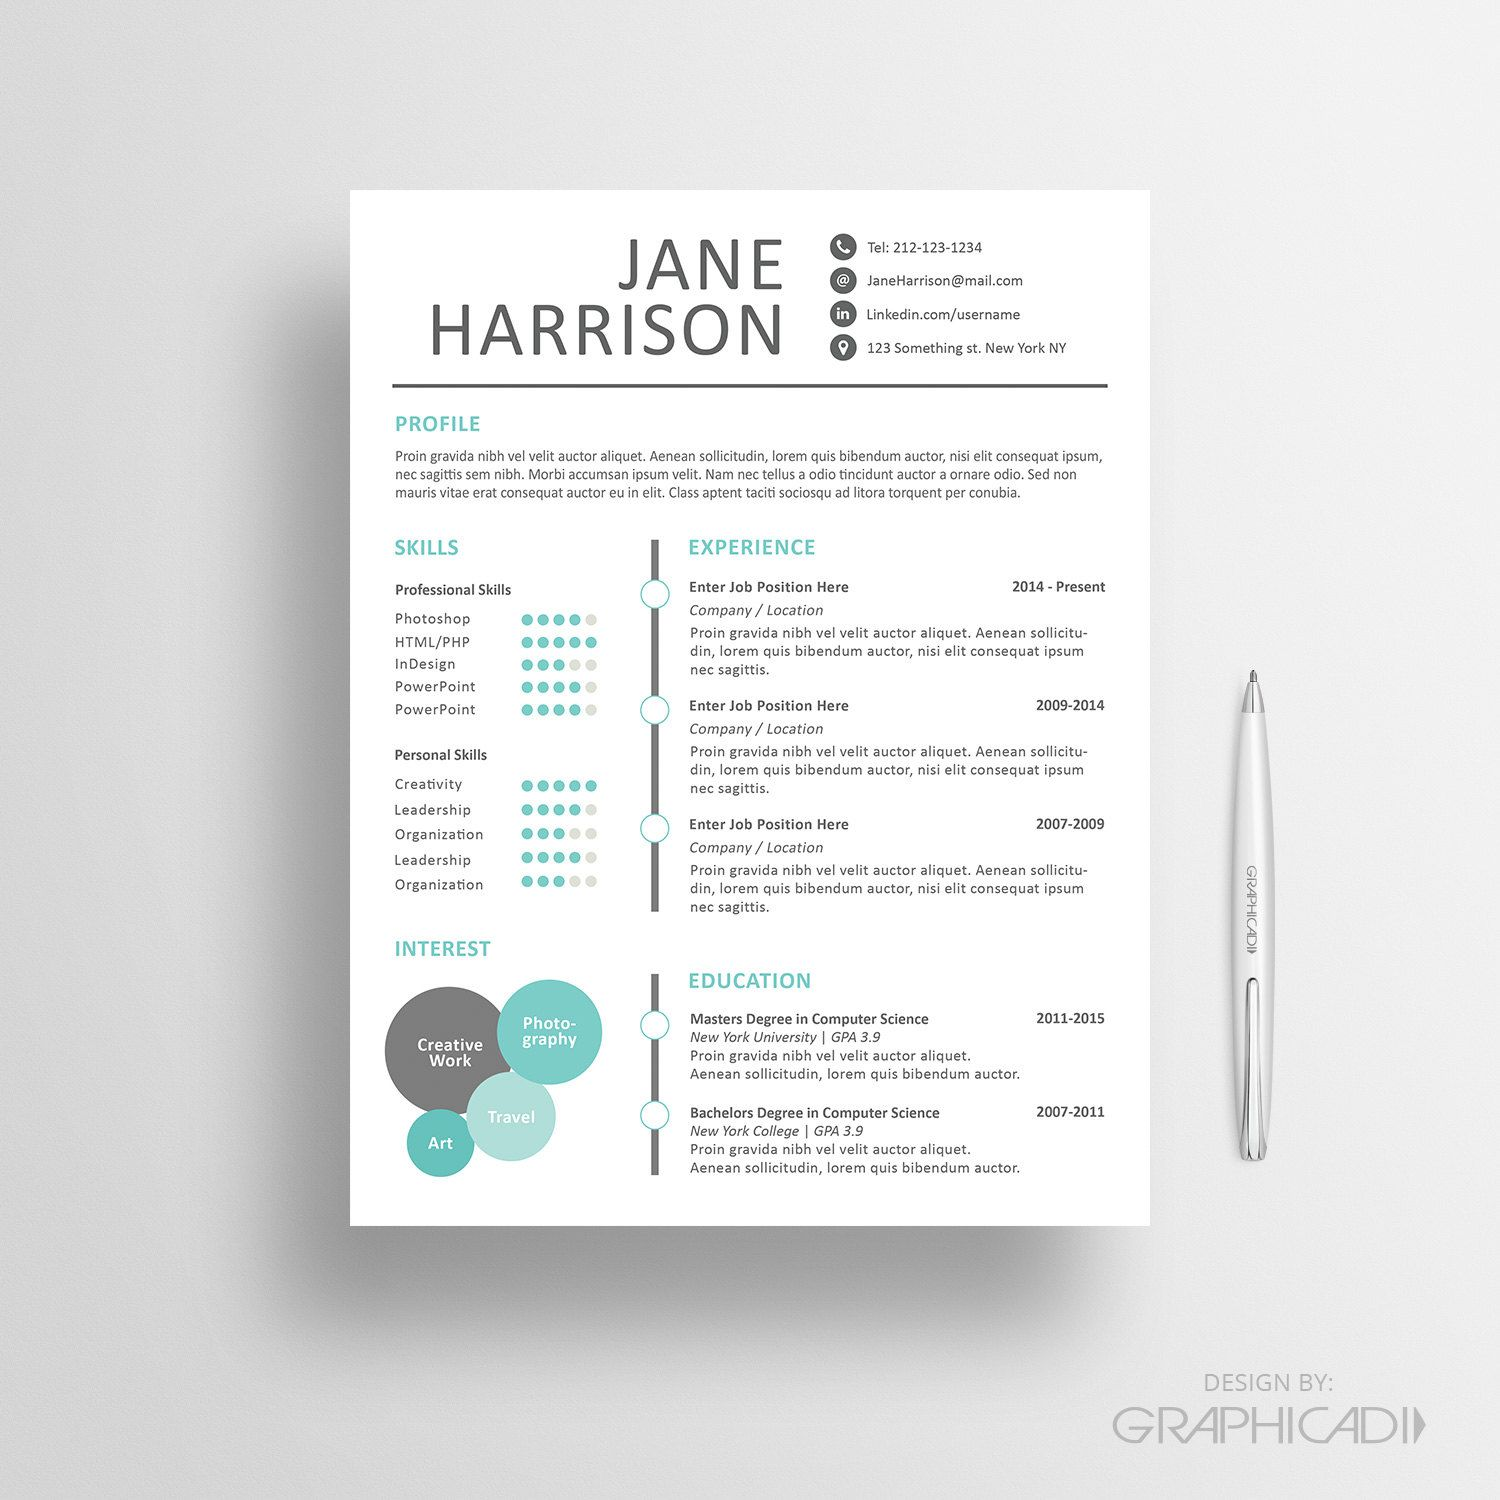 Cv Design On Behance      Cv Design